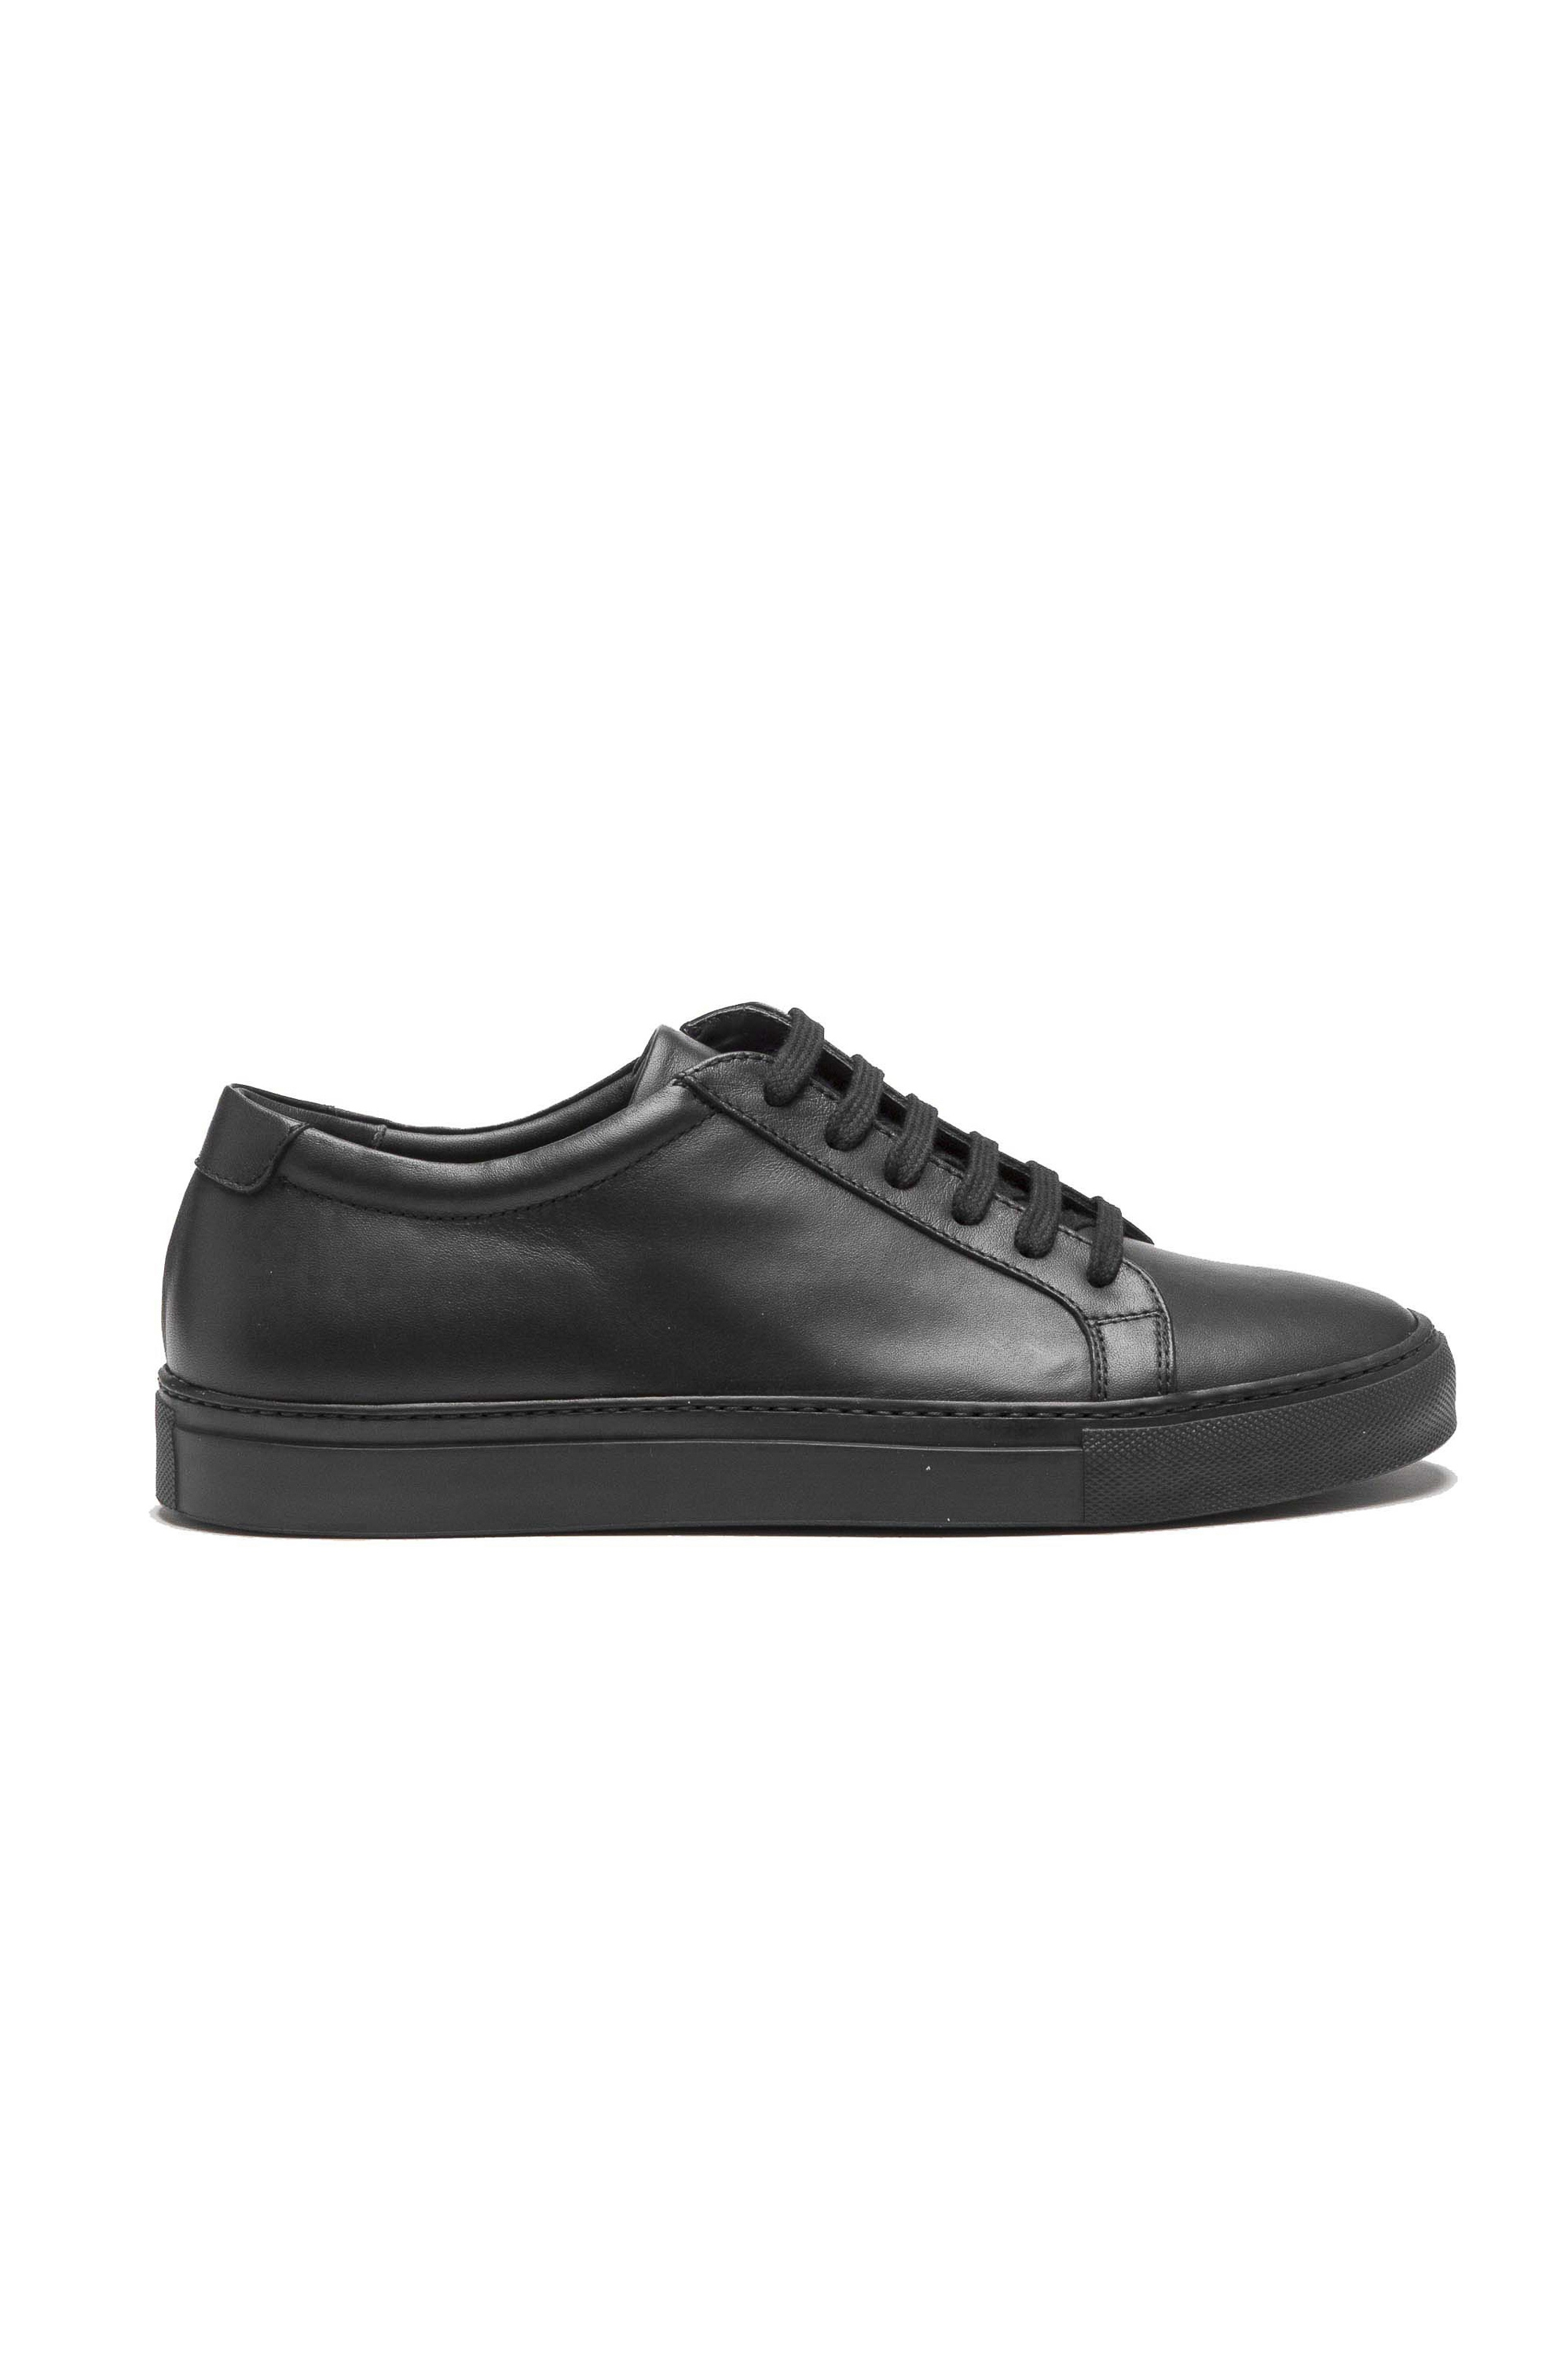 SBU 01527 Classic lace up sneakers in black calfskin leather 01